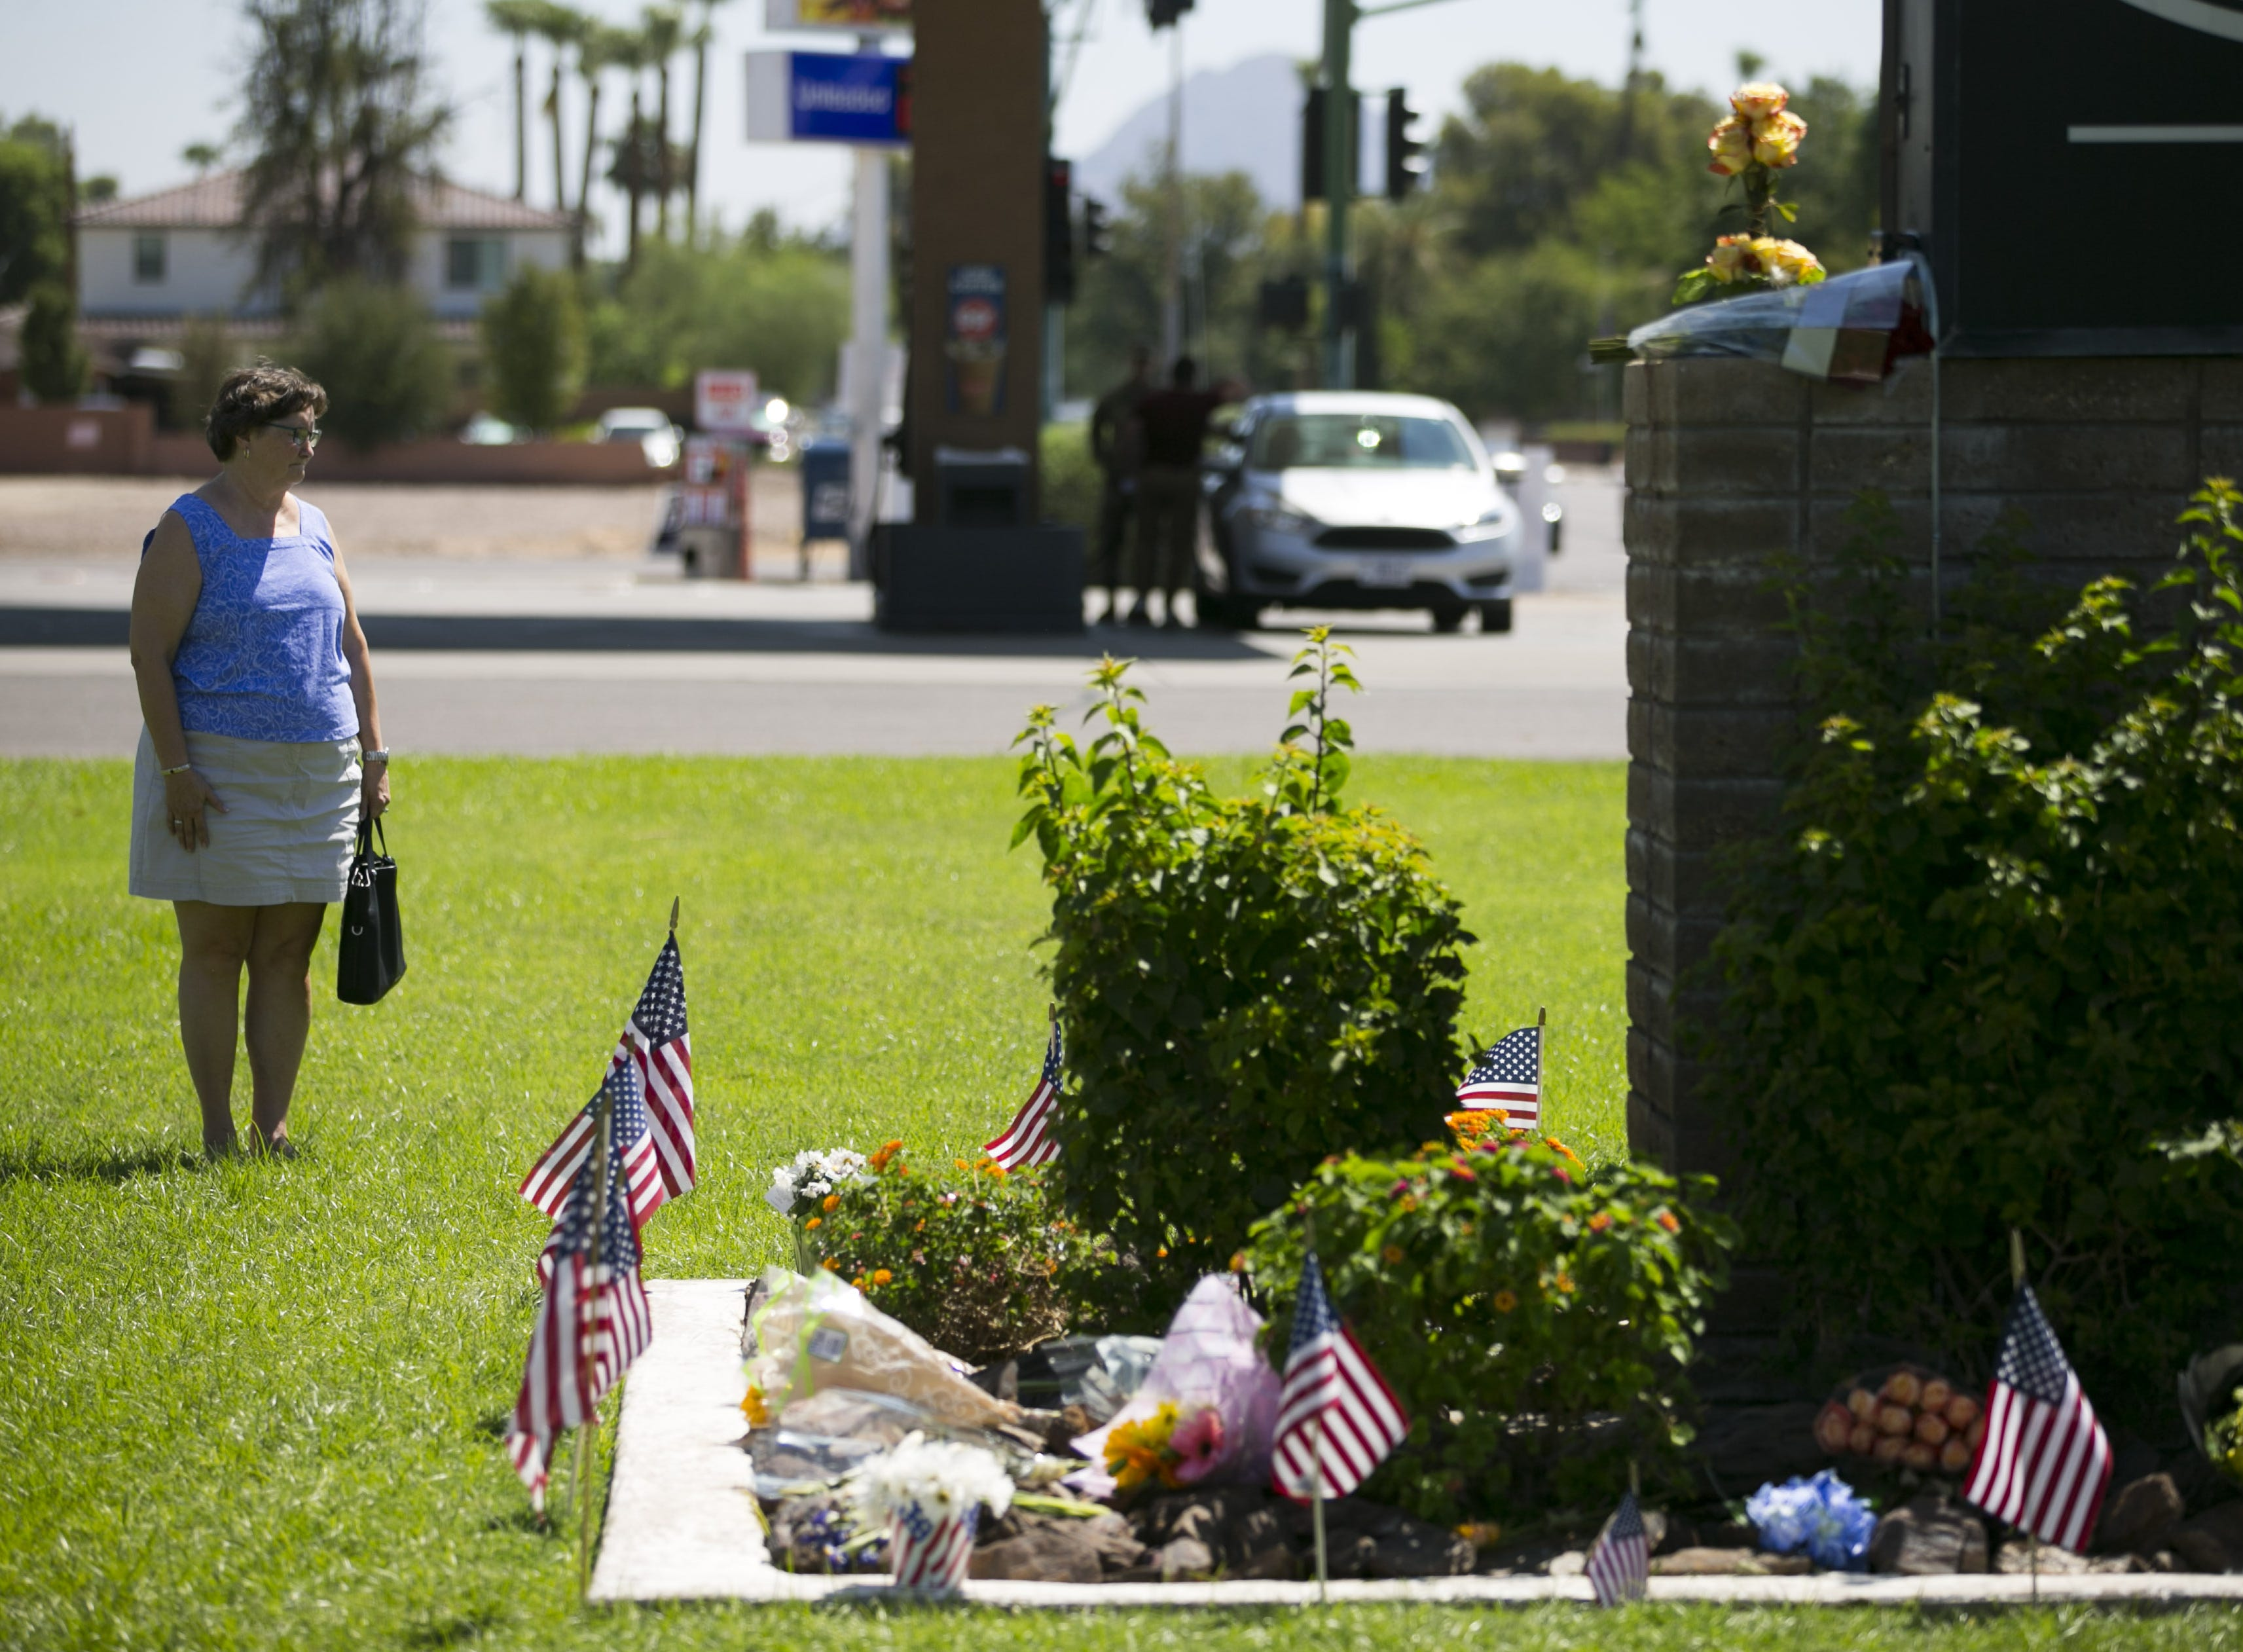 Patty Young of Phoenix, looks at a memorial for Sen. John McCain at A.L. Moore-Grimshaw Mortuaries in Phoenix, on Aug. 27, 2018.